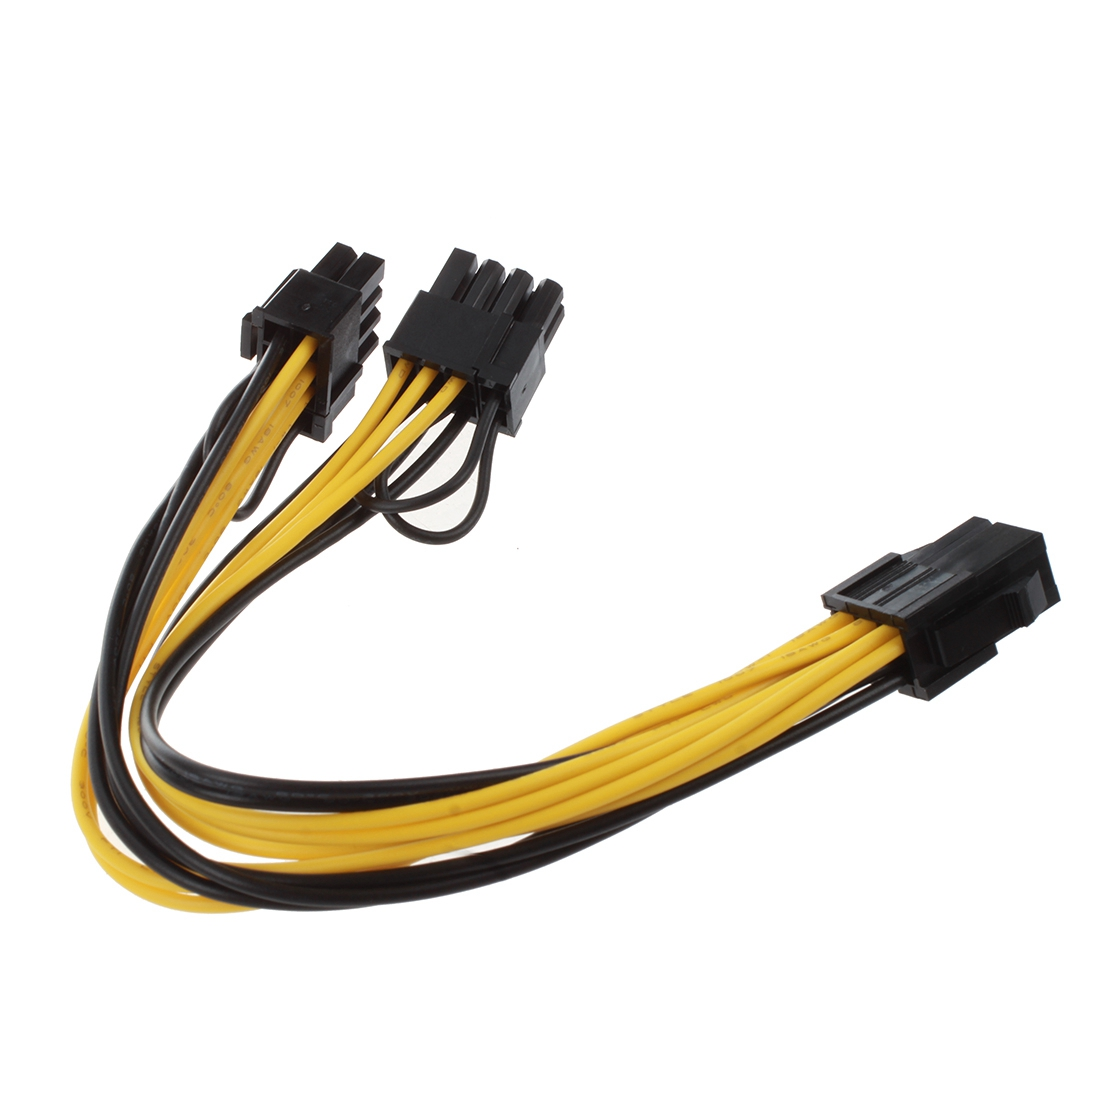 semoic Module 6Pin <font><b>to</b></font> <font><b>Dual</b></font> PCI-E PCIe <font><b>8Pin</b></font> + <font><b>8Pin</b></font> (<font><b>6</b></font>+<font><b>2Pin</b></font>) Power Ribbon <font><b>Cable</b></font> Cord 20cm + 20cm for Thermaltake Tt 650 W0163 PS image